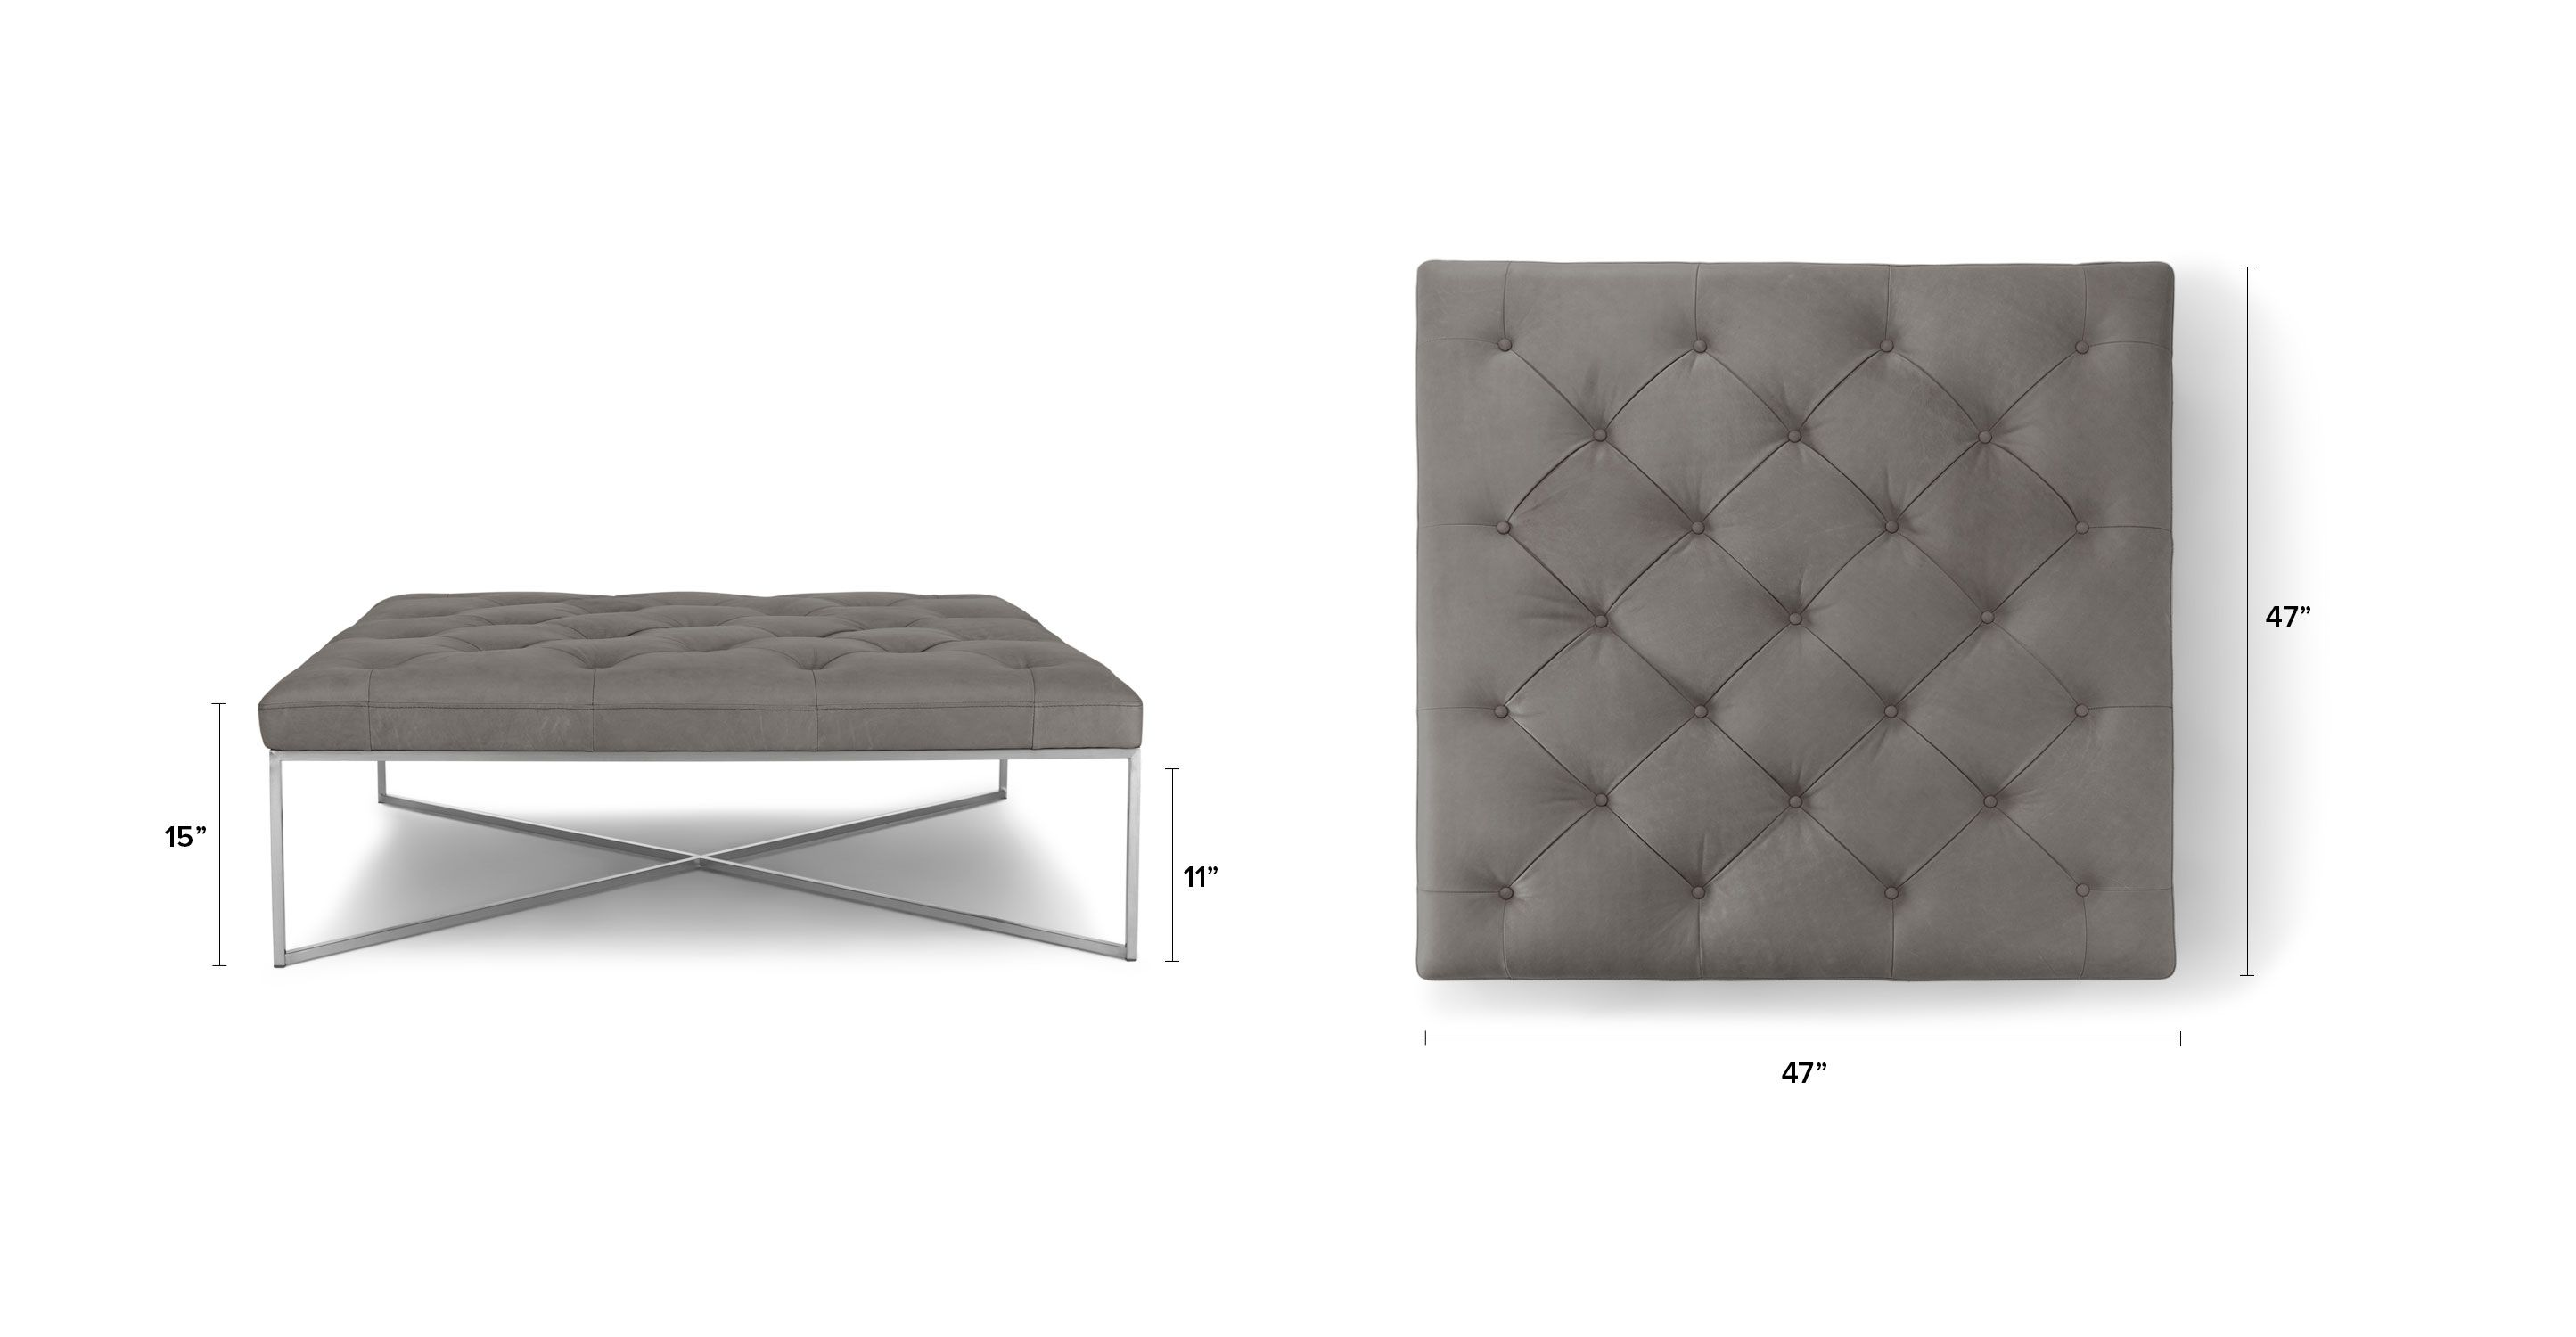 Tablet Lichen Gray Square Ottoman Ottomans Article Modern Mid Century And Scandinavian Furniture Ottoman Upholstered Ottoman Modern Ottoman [ 1500 x 2890 Pixel ]